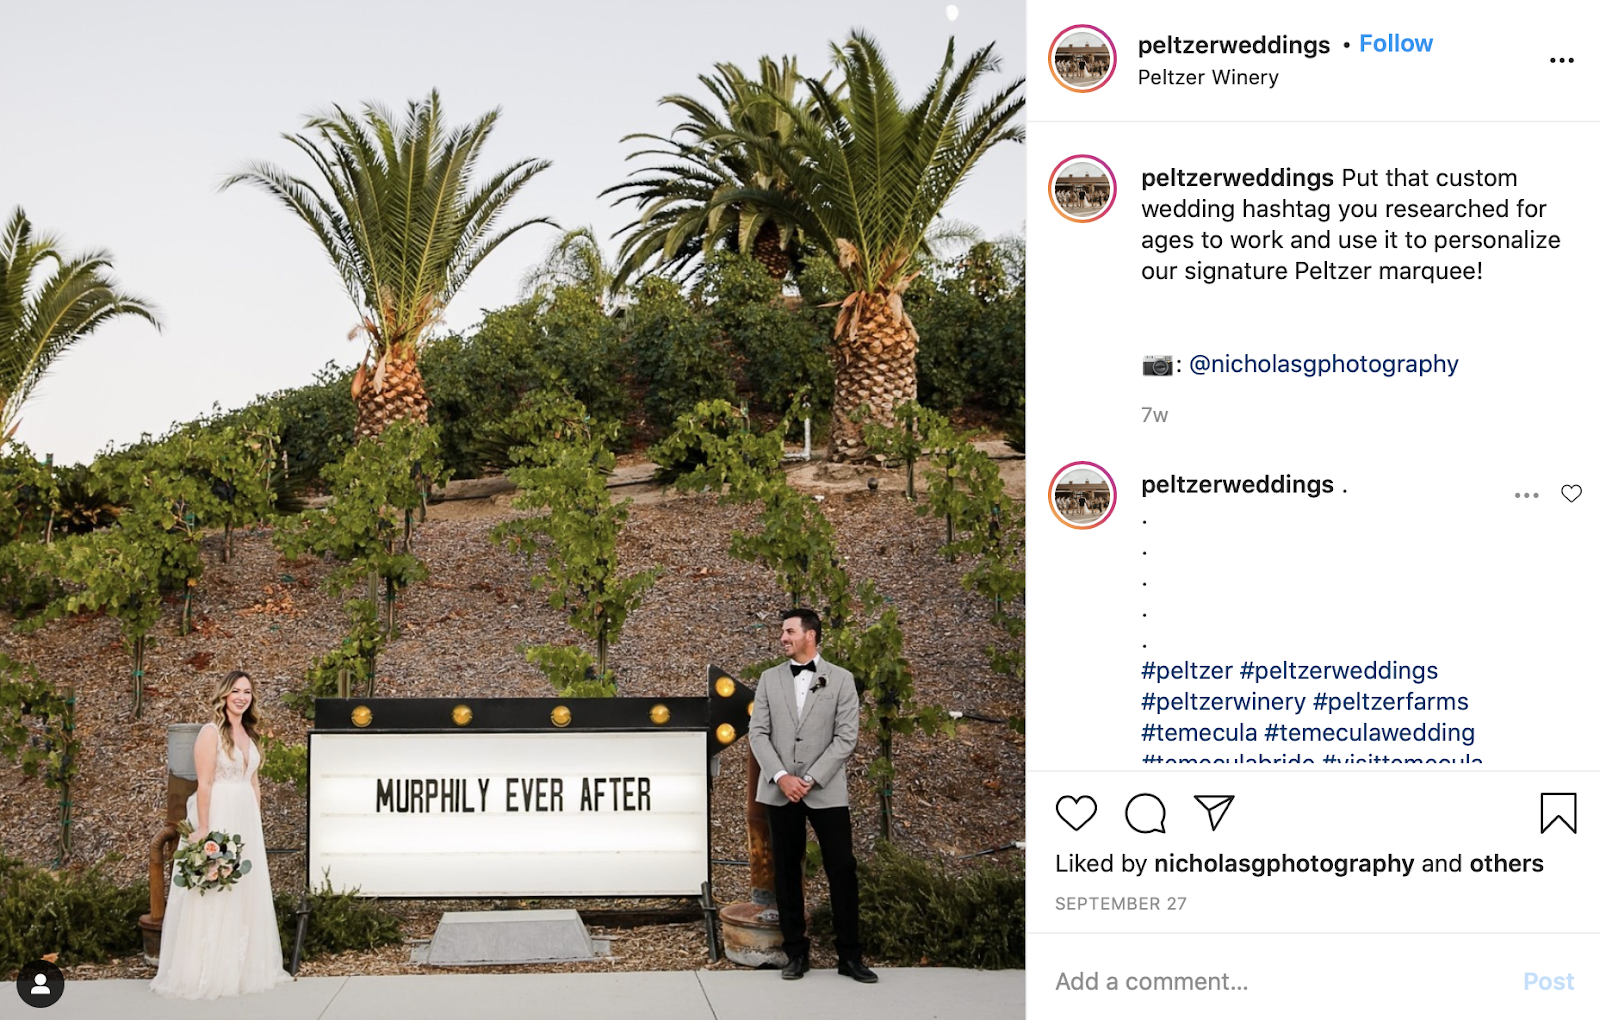 hashtag being used at the wedding